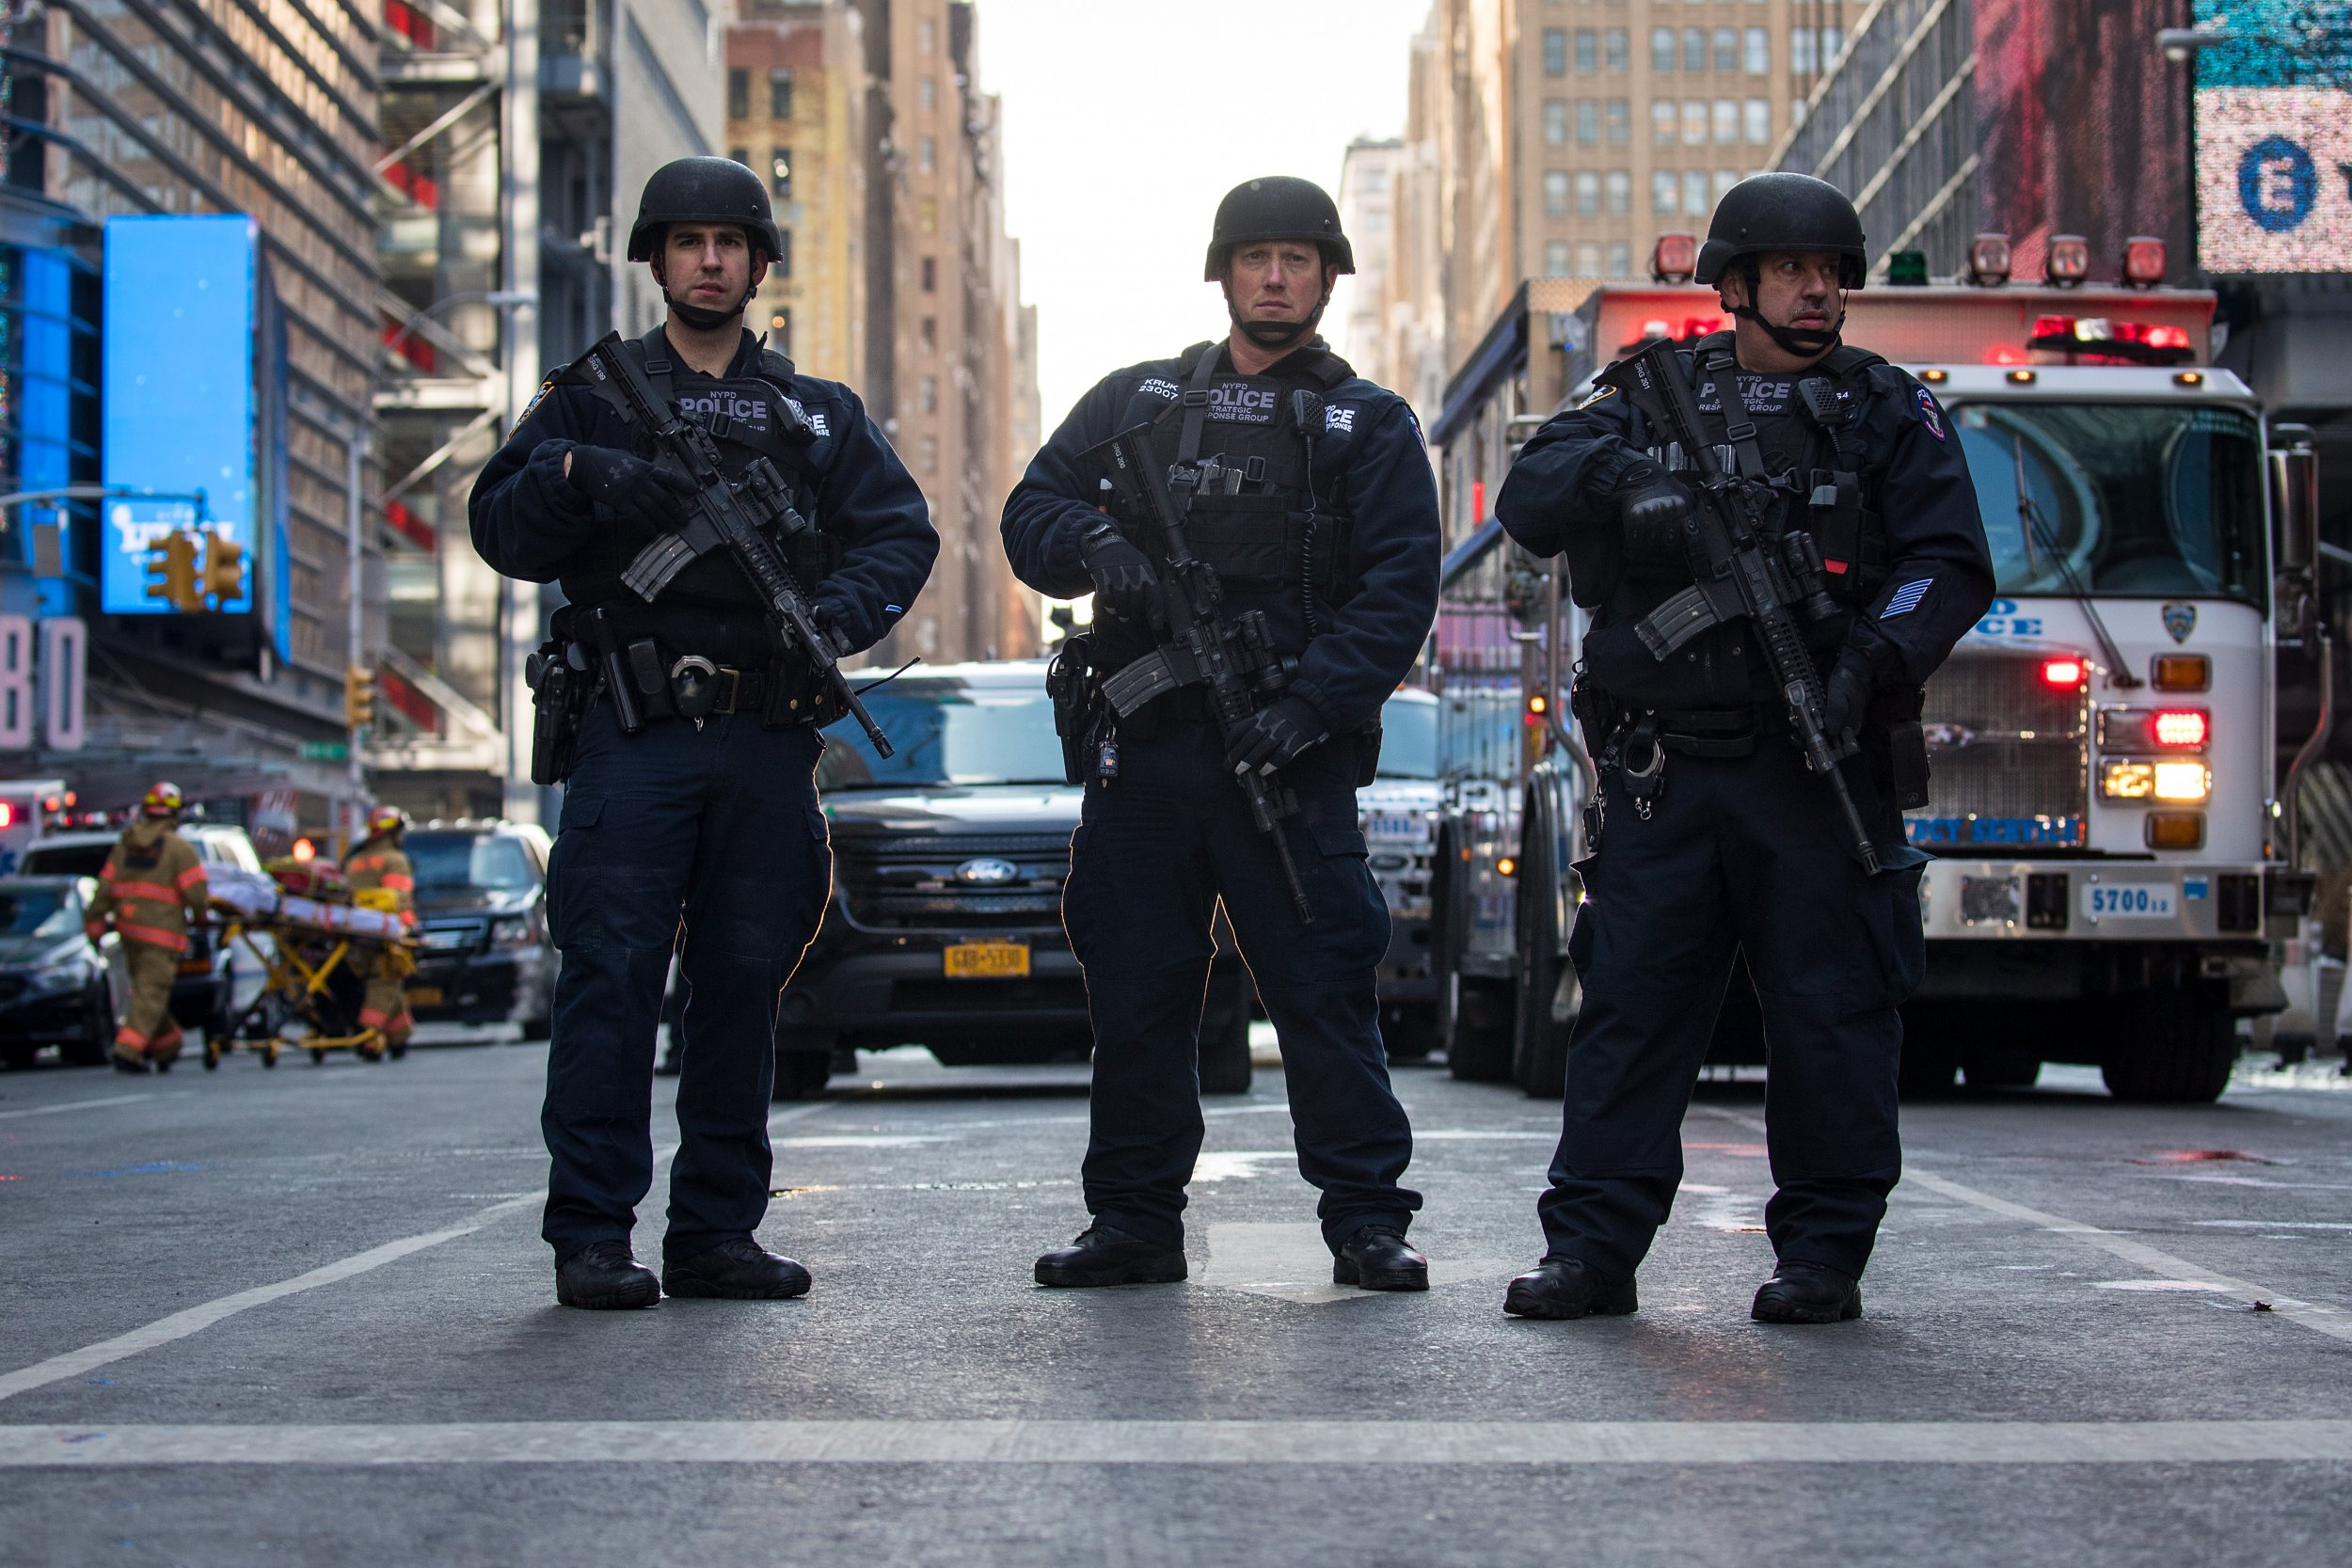 Empathy Lessons Training Police To >> Nypd Will Launch Implicit Bias Training For Police Officers Three